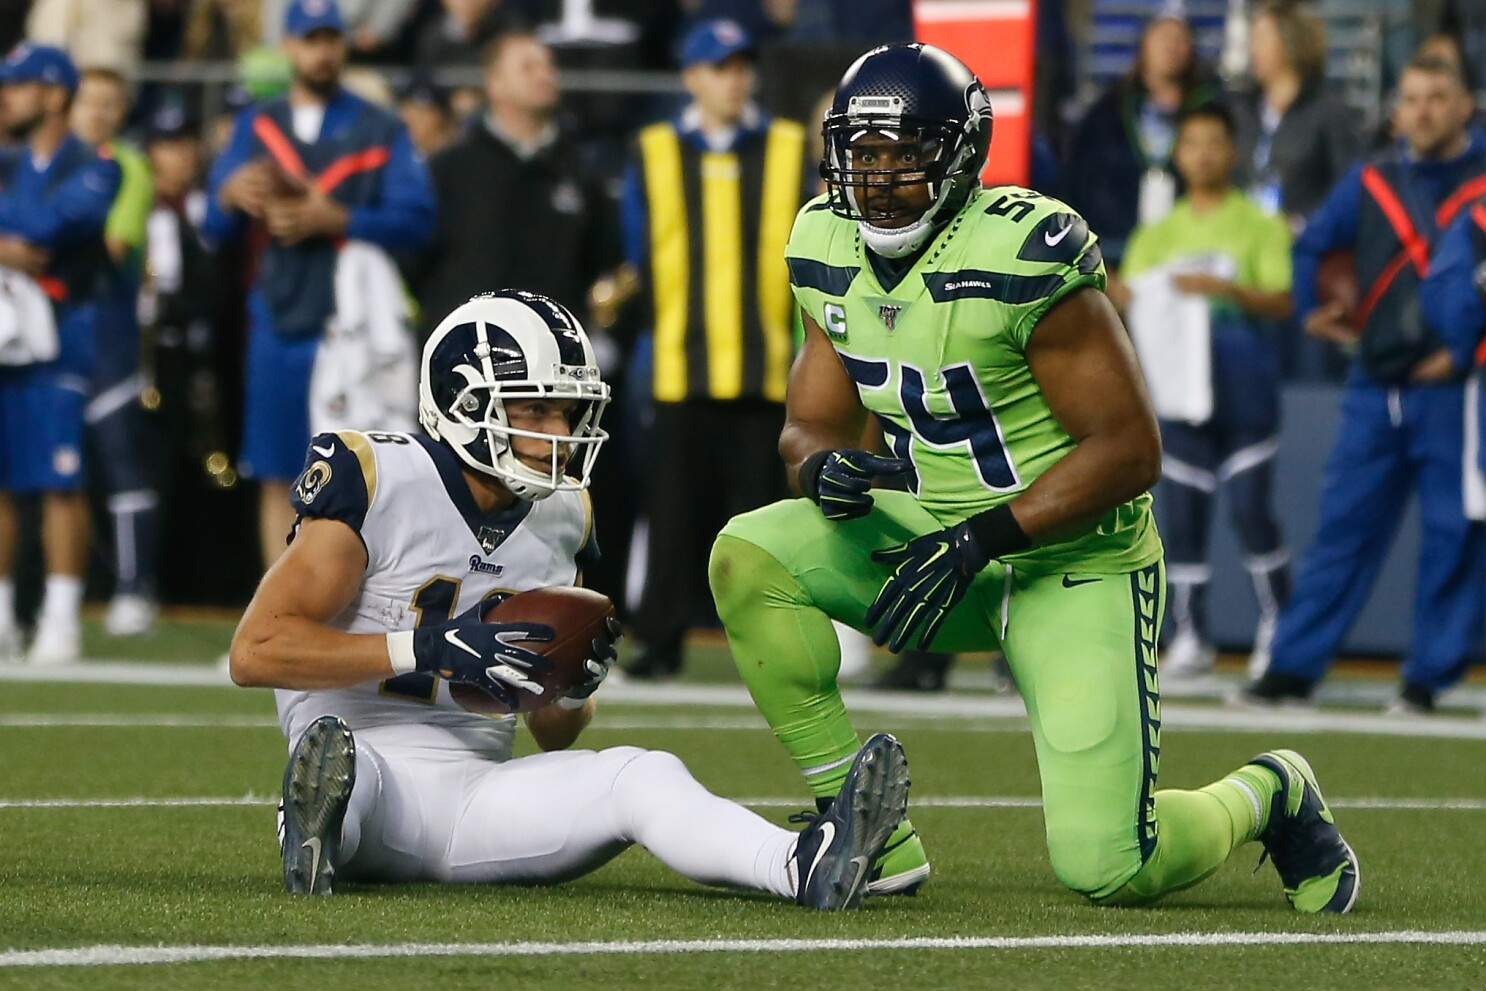 Rams Vs Seahawks A Look At How The Teams Match Up Los Angeles Times